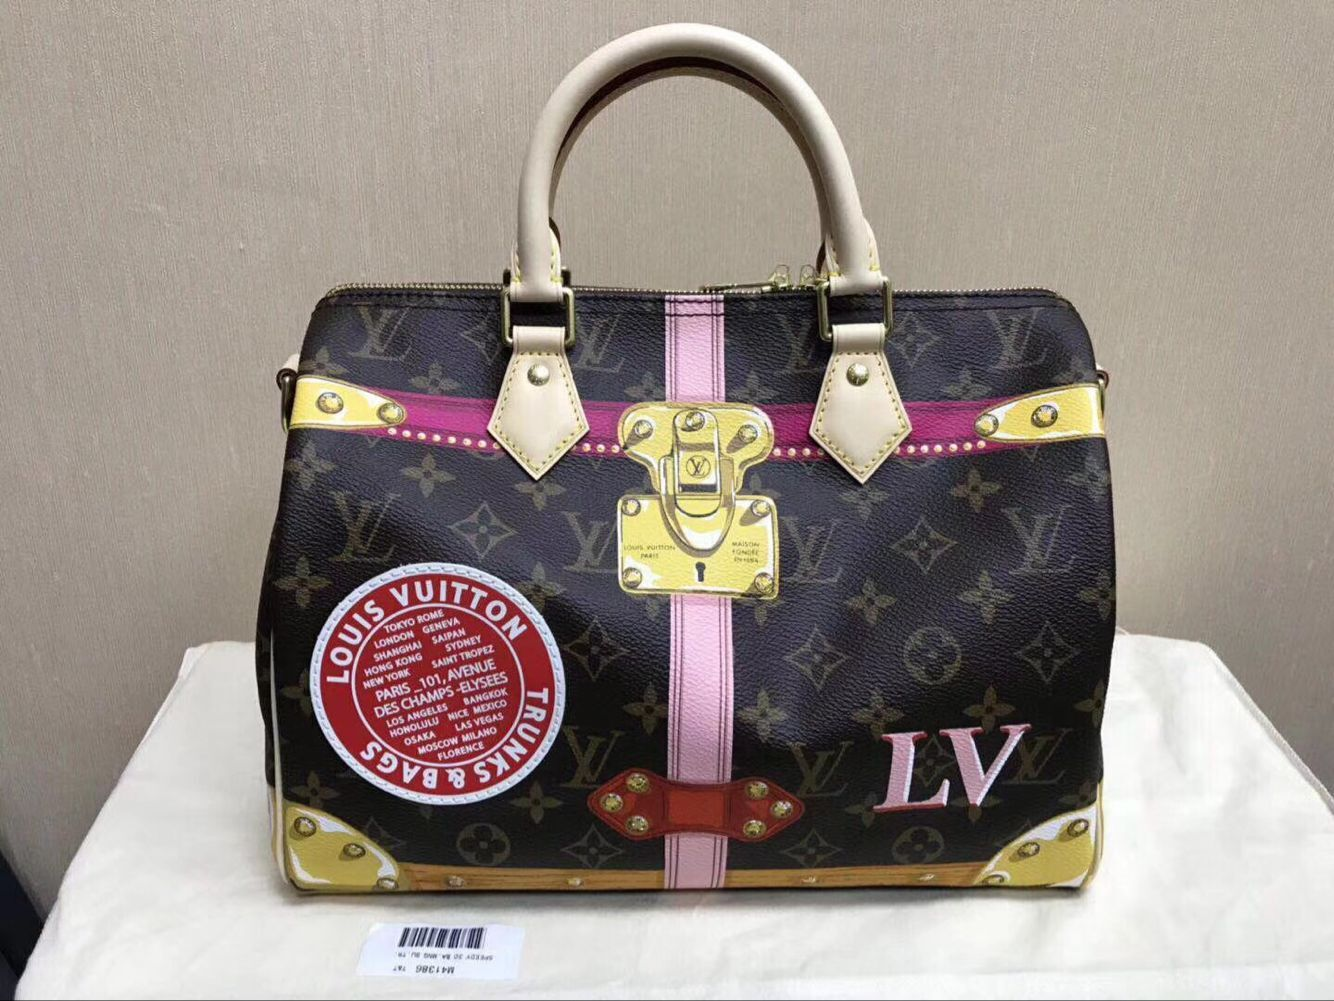 Neu Louis Vuitton Bandouliere Summer Trunks 2018 original speedy 30 B41112